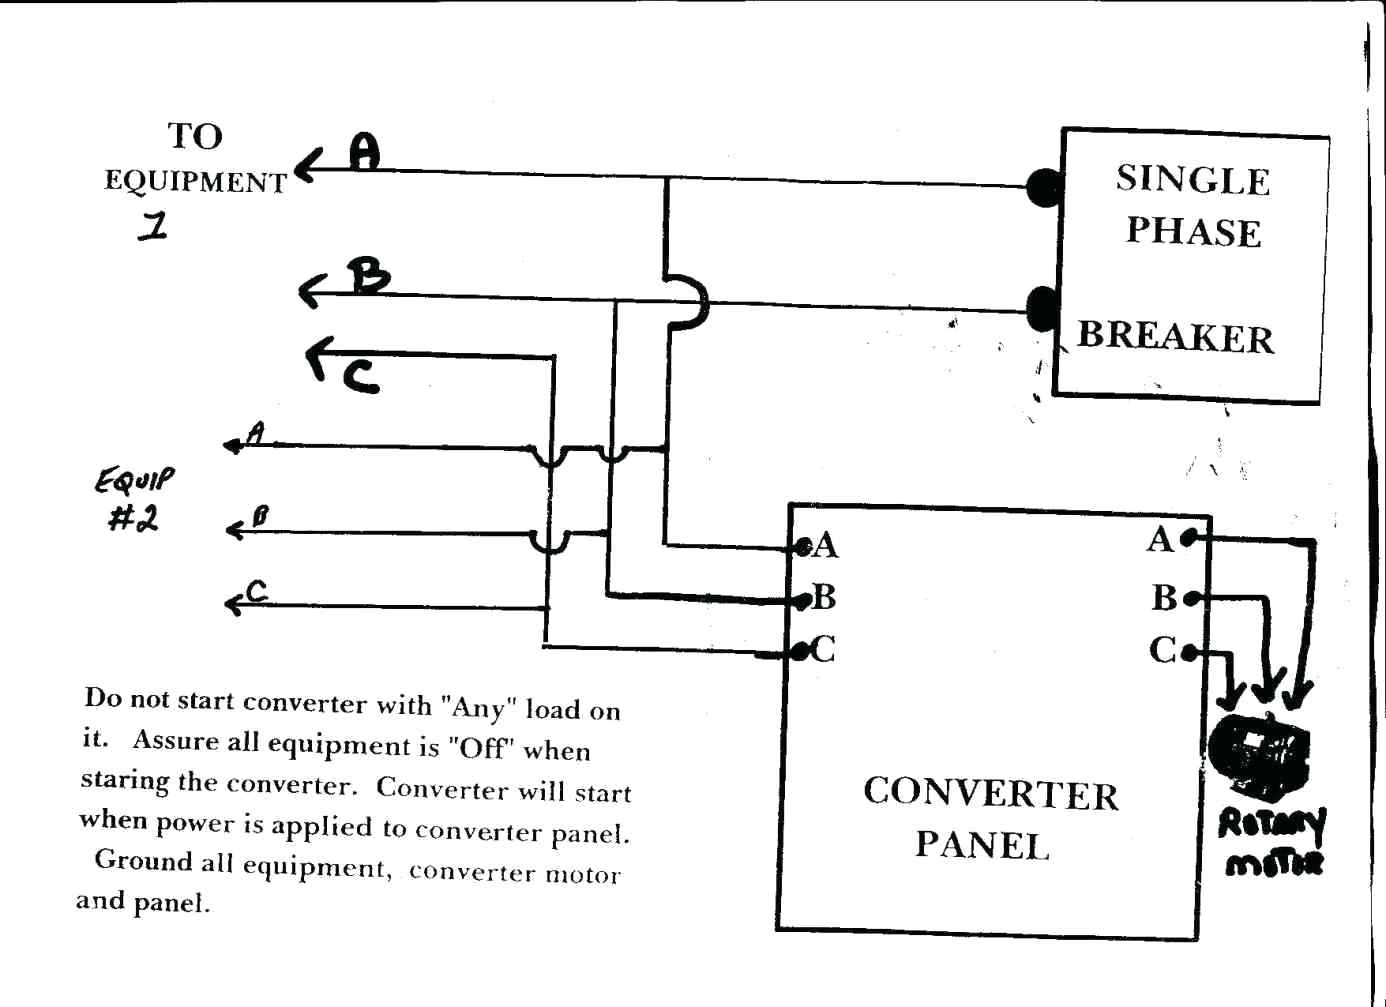 siemens load center wiring diagram Download-Charming Square D Shunt Trip Breaker Wiring Diagram s Siemens Trend For To Update With 1-g